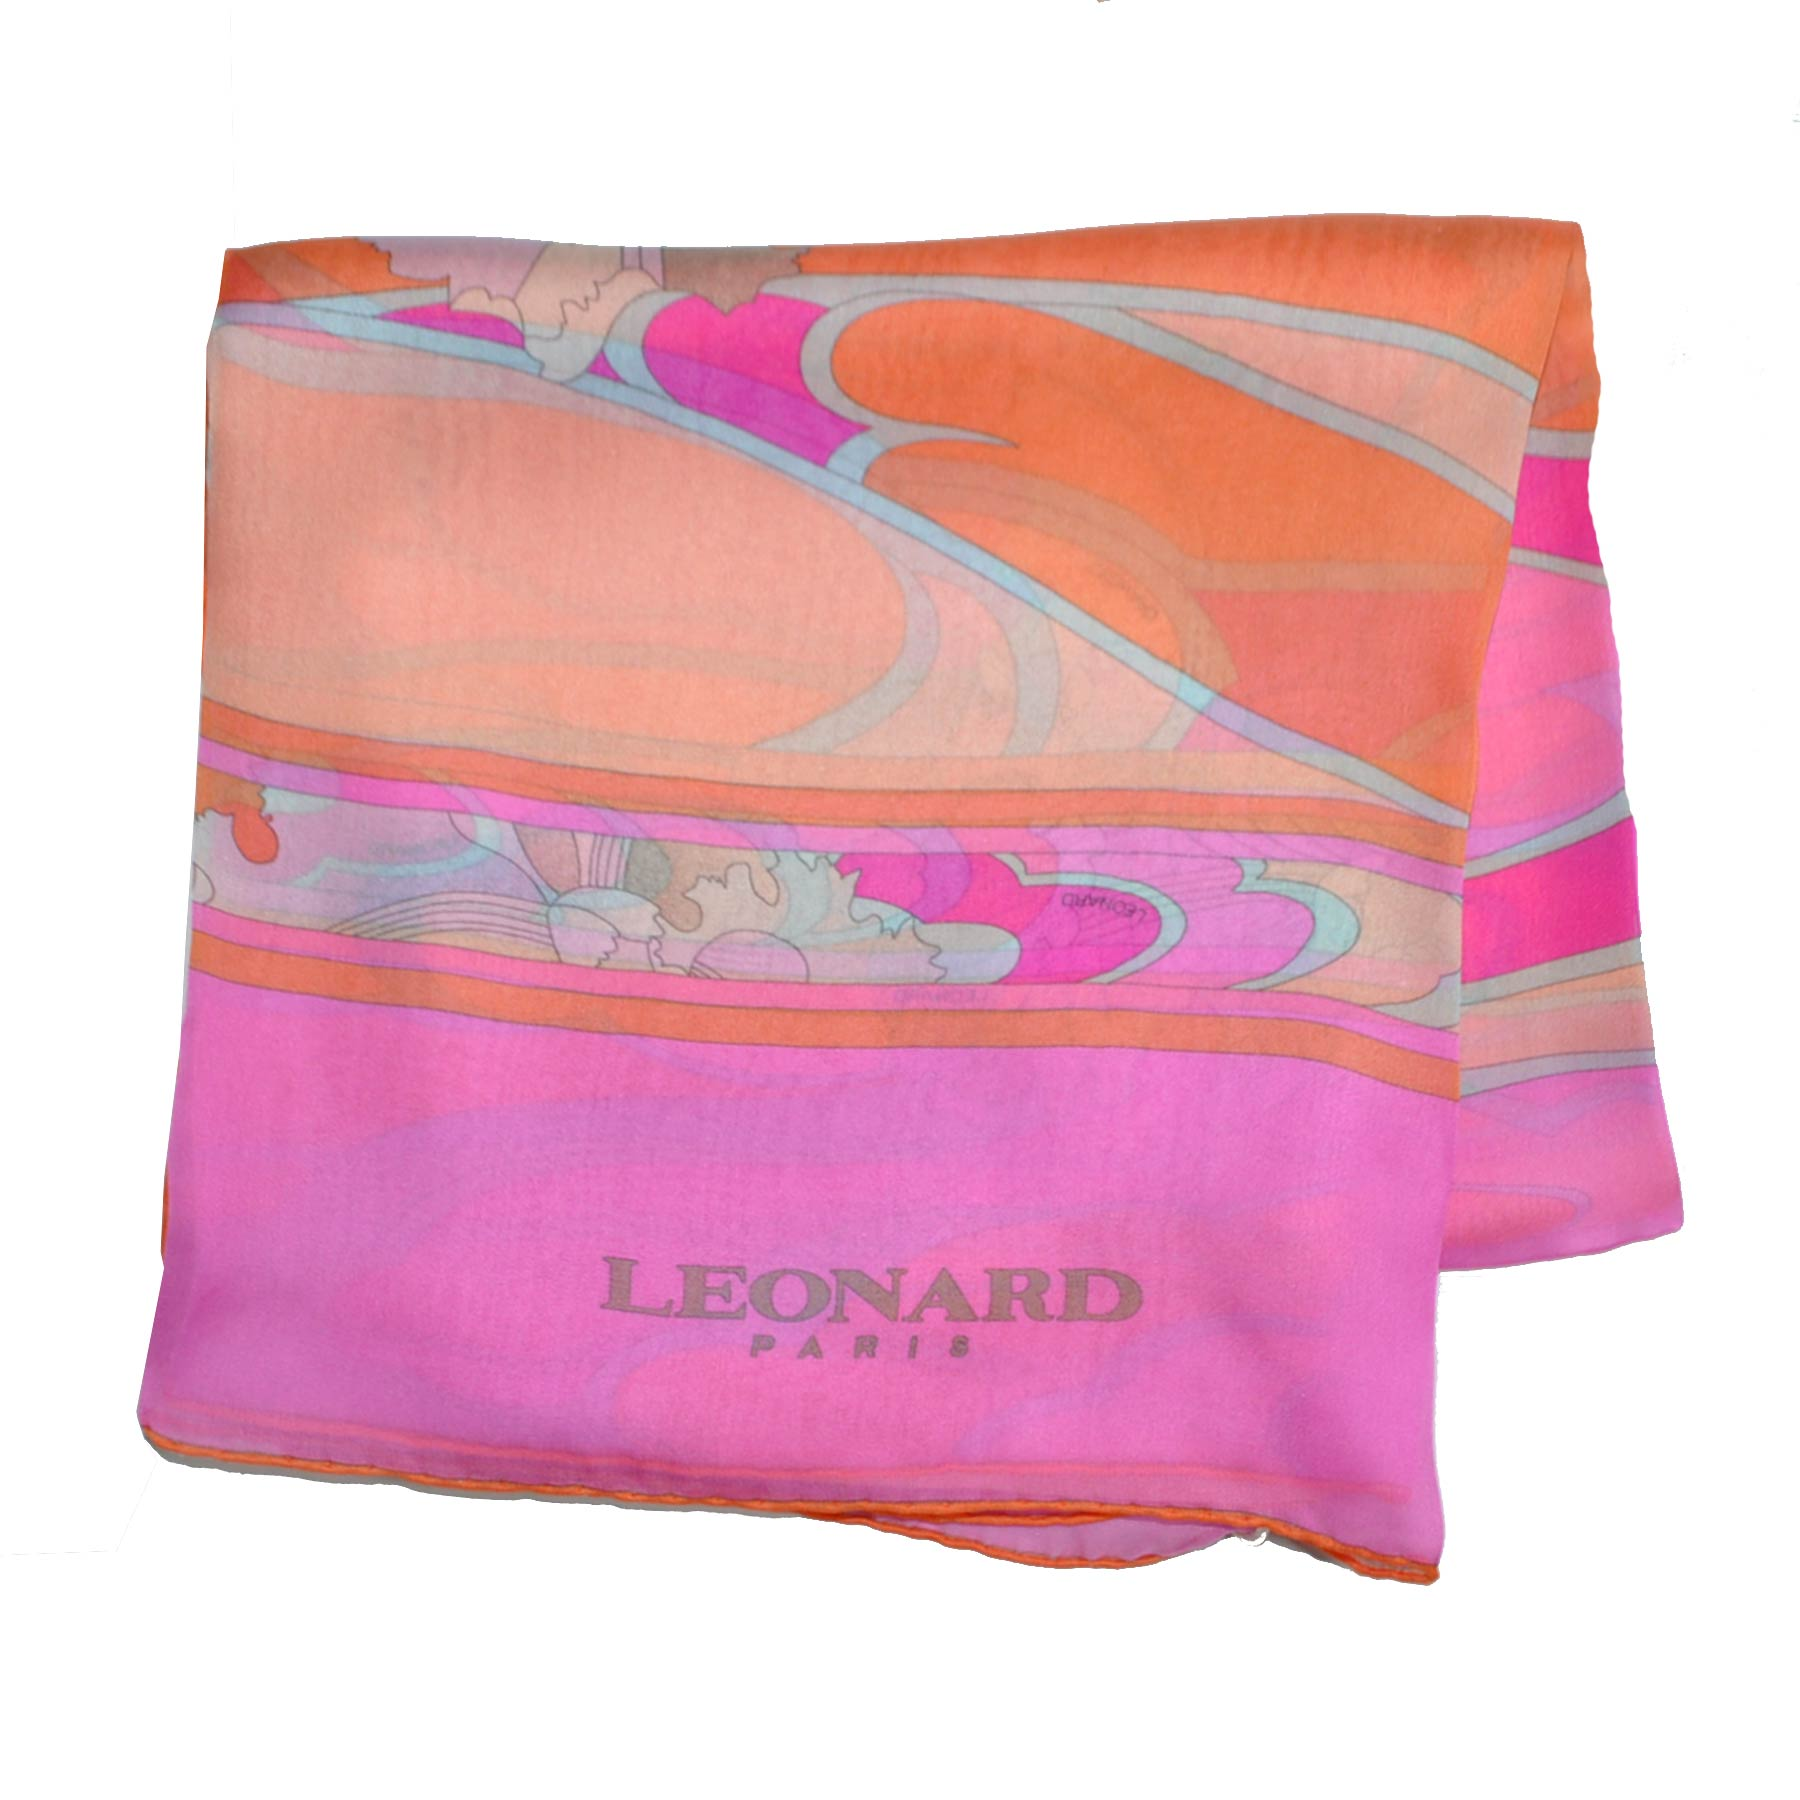 Leonard Paris Scarf Pink Orange Floral